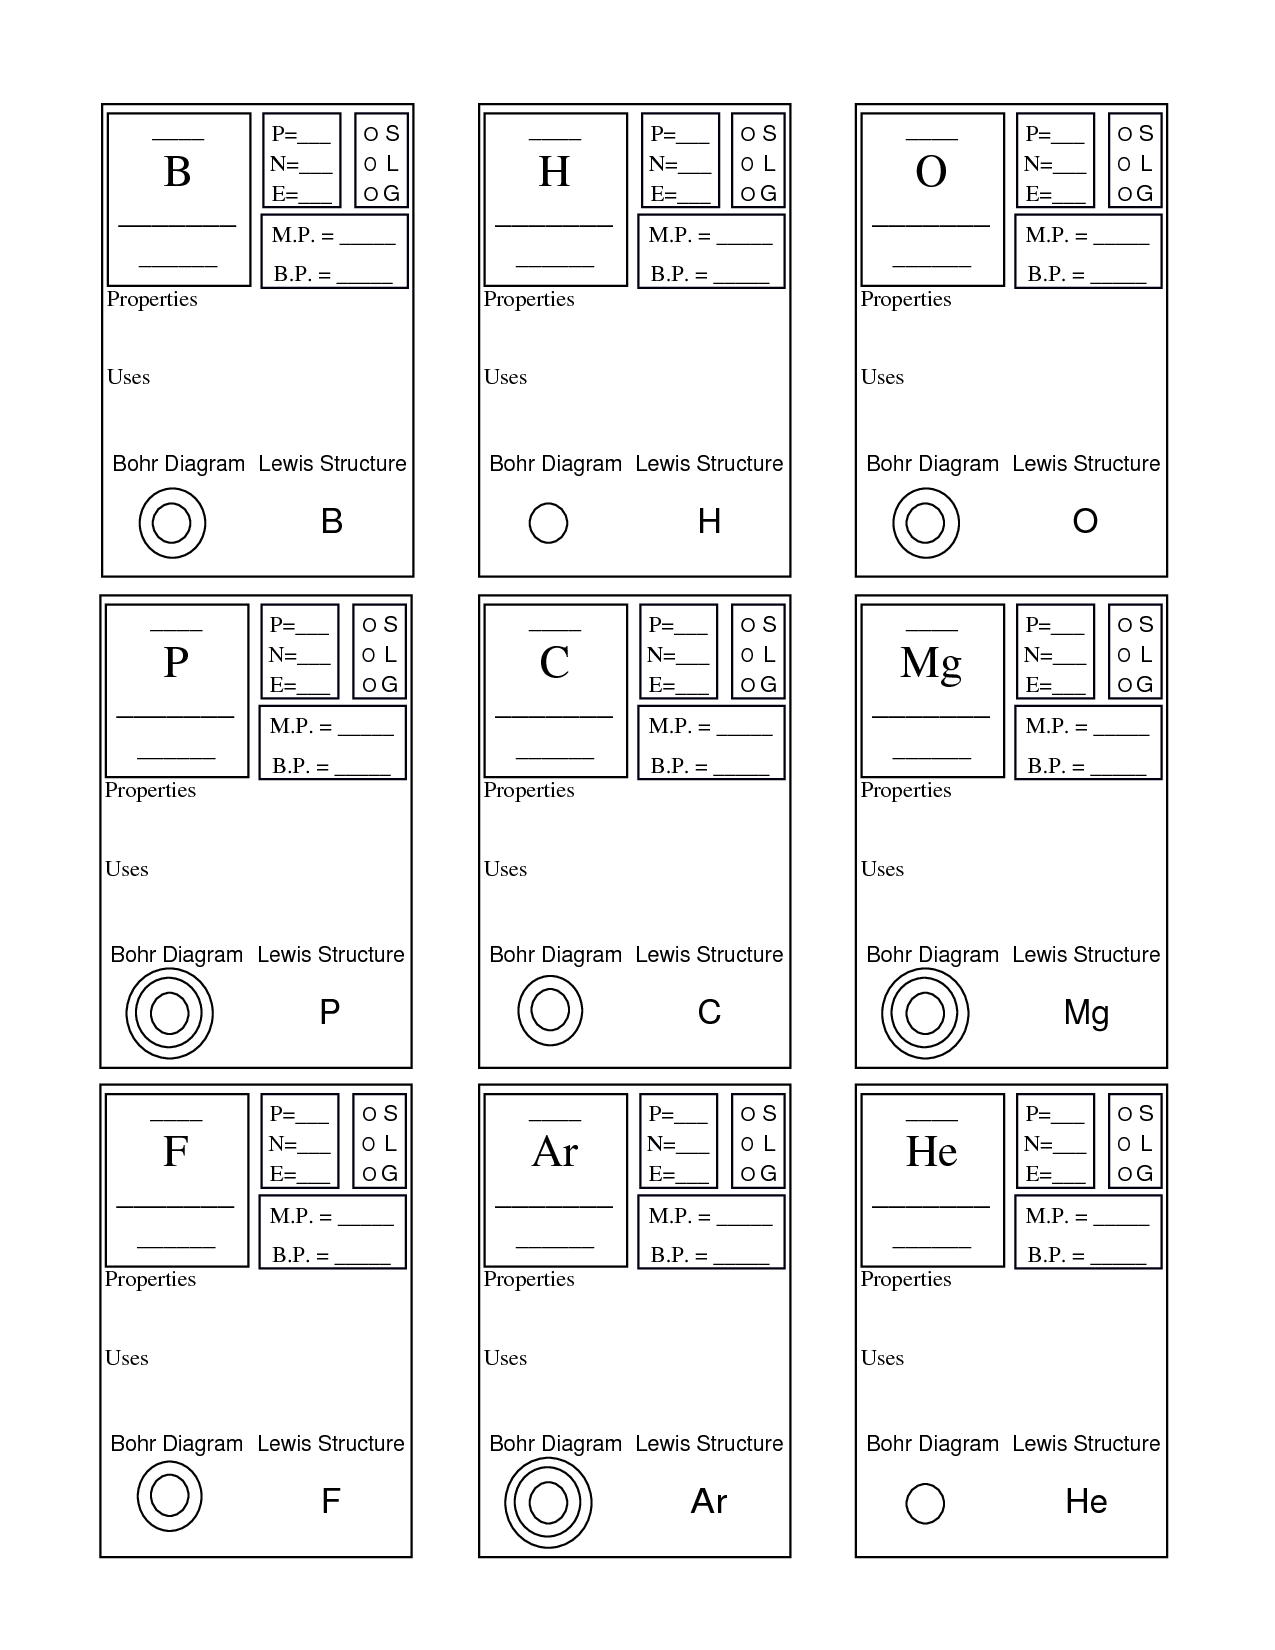 Periodic table basics worksheet answer key education pinterest periodic table basics worksheet answer key gamestrikefo Choice Image